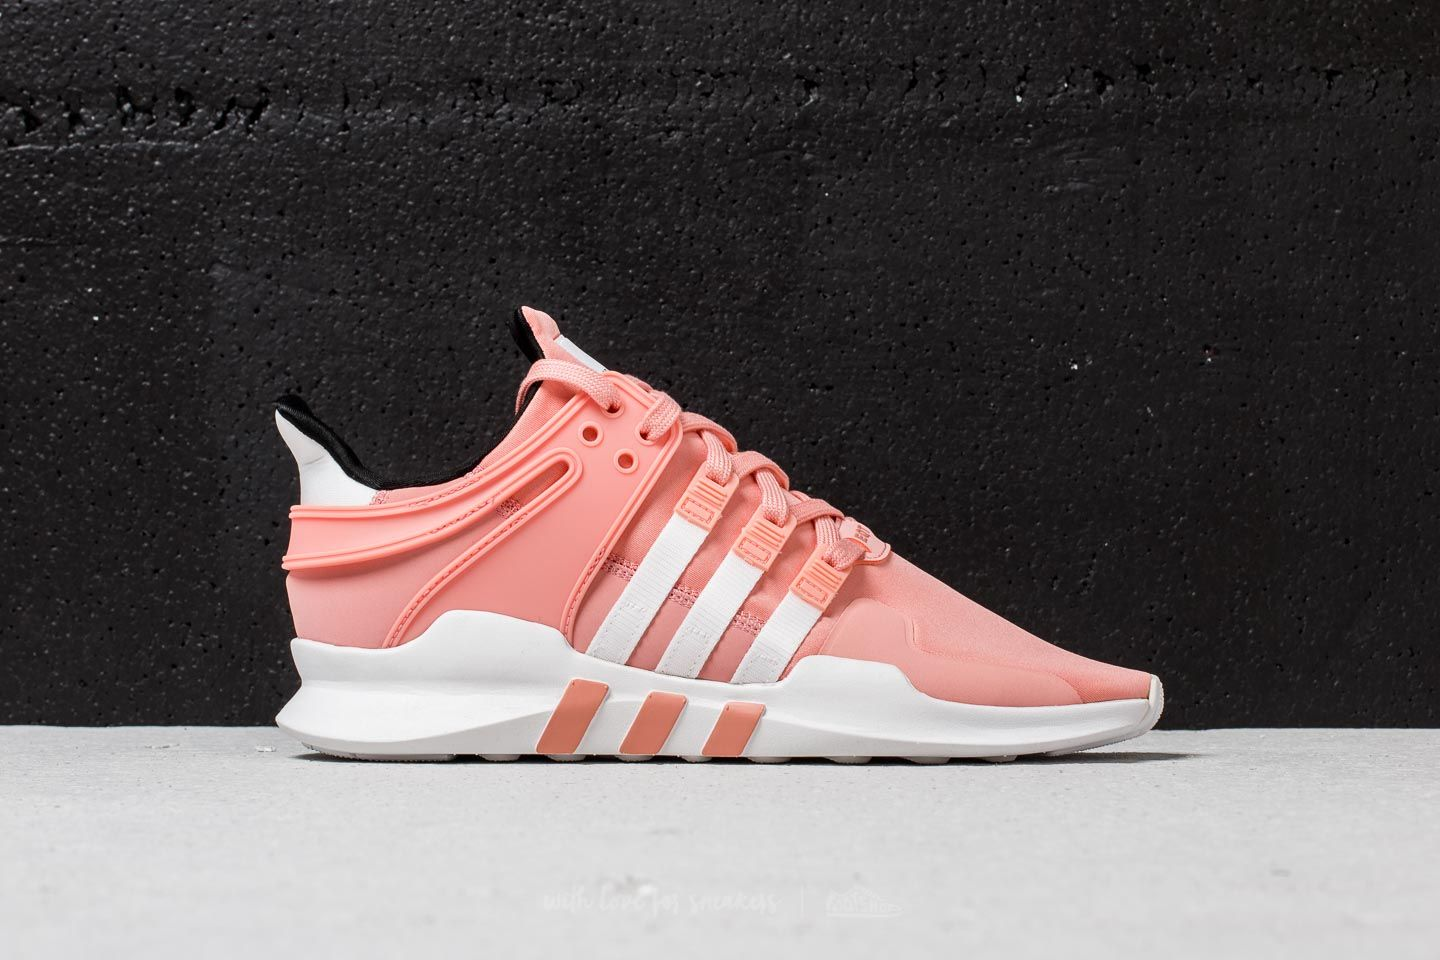 newest 7f445 e77a3 adidas EQT Support ADV Trace Pink/ Ftw White/ Core Black ...